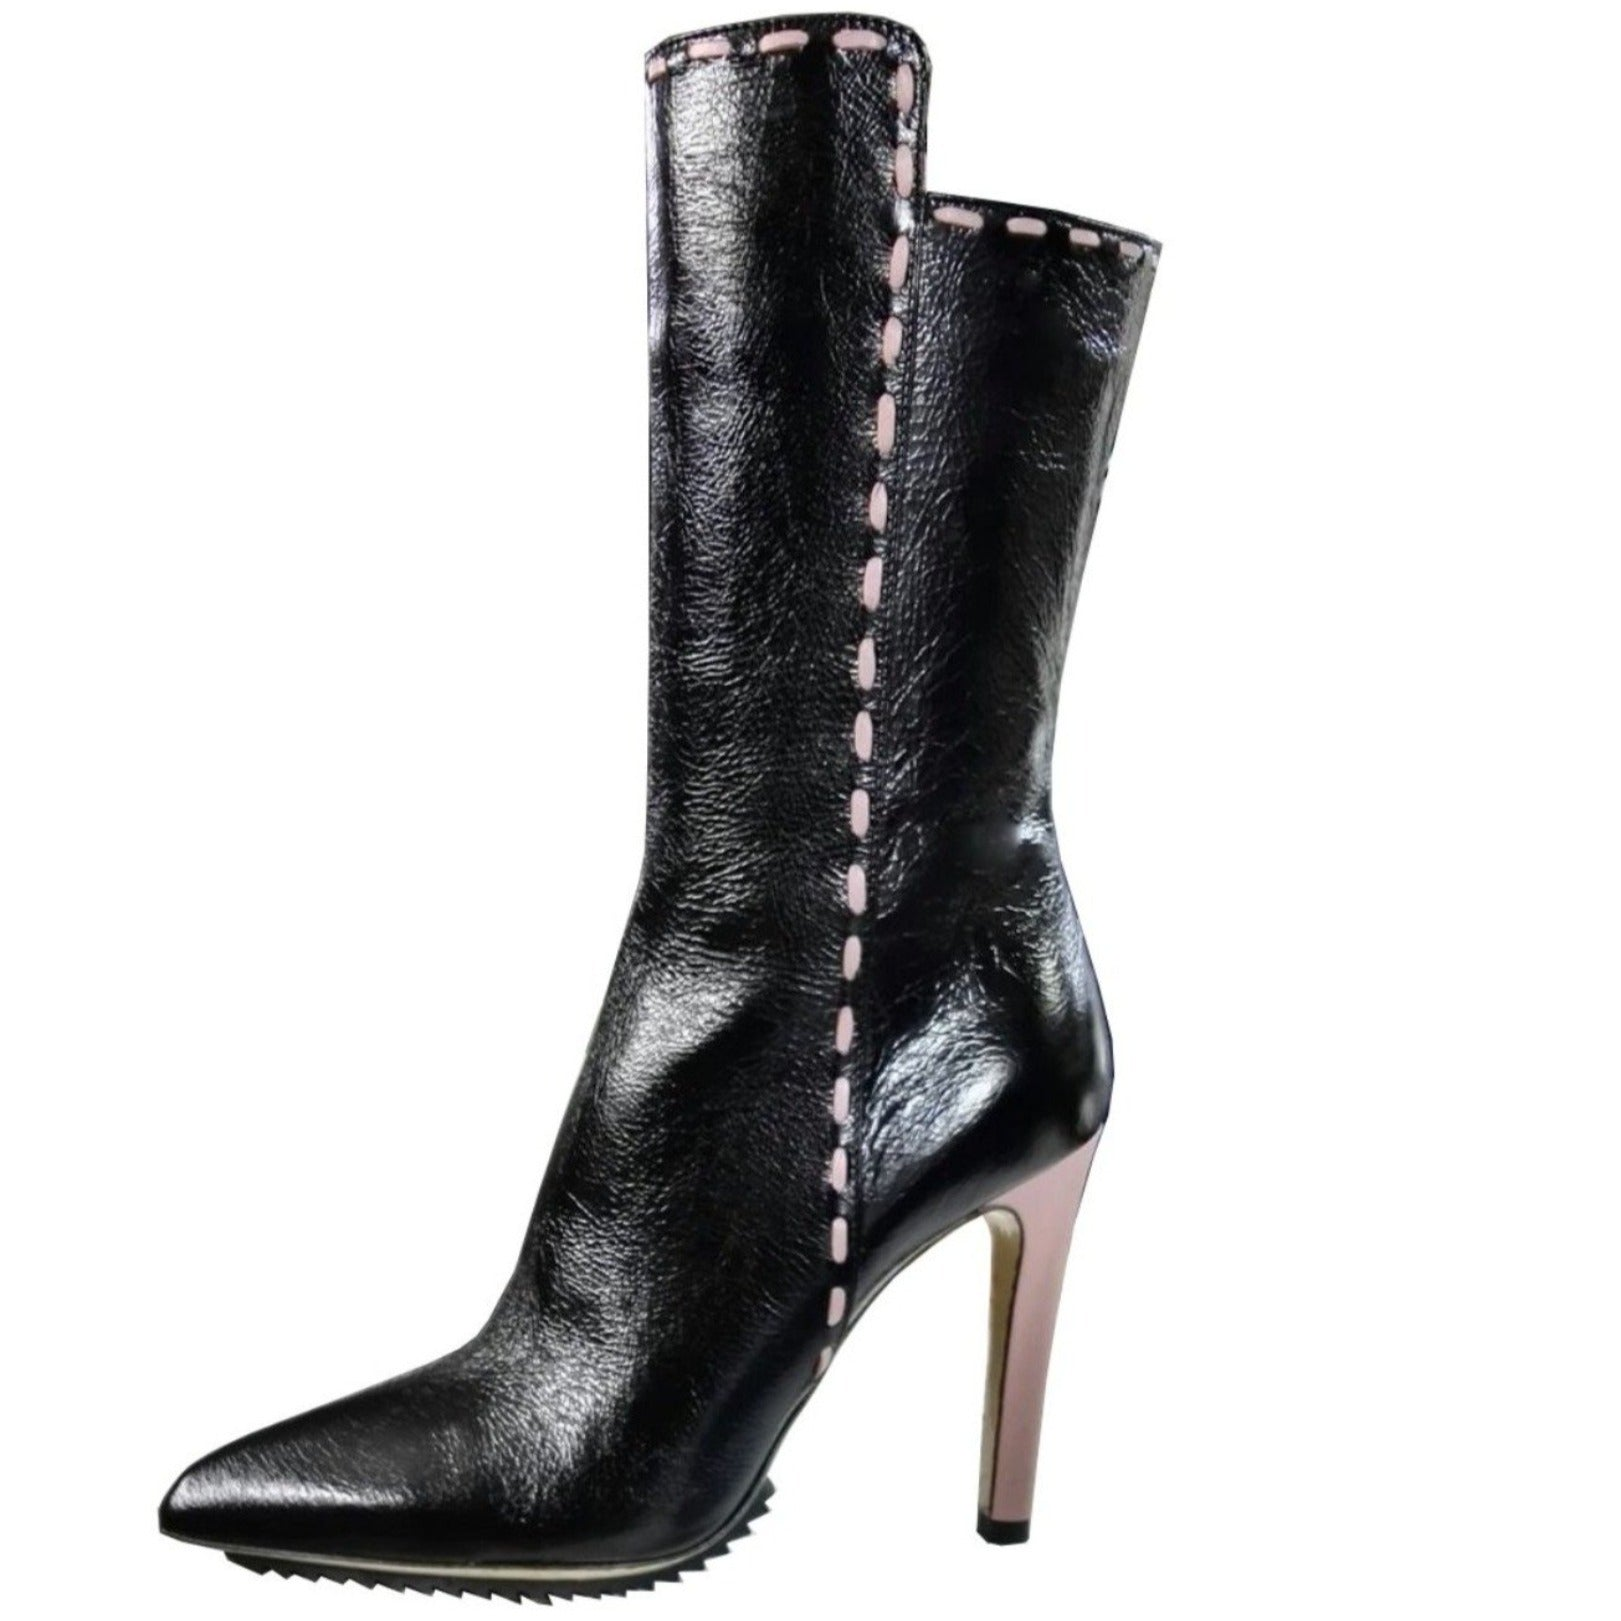 TreQuarti Boot - Maria Cardelli Fashion Accessories